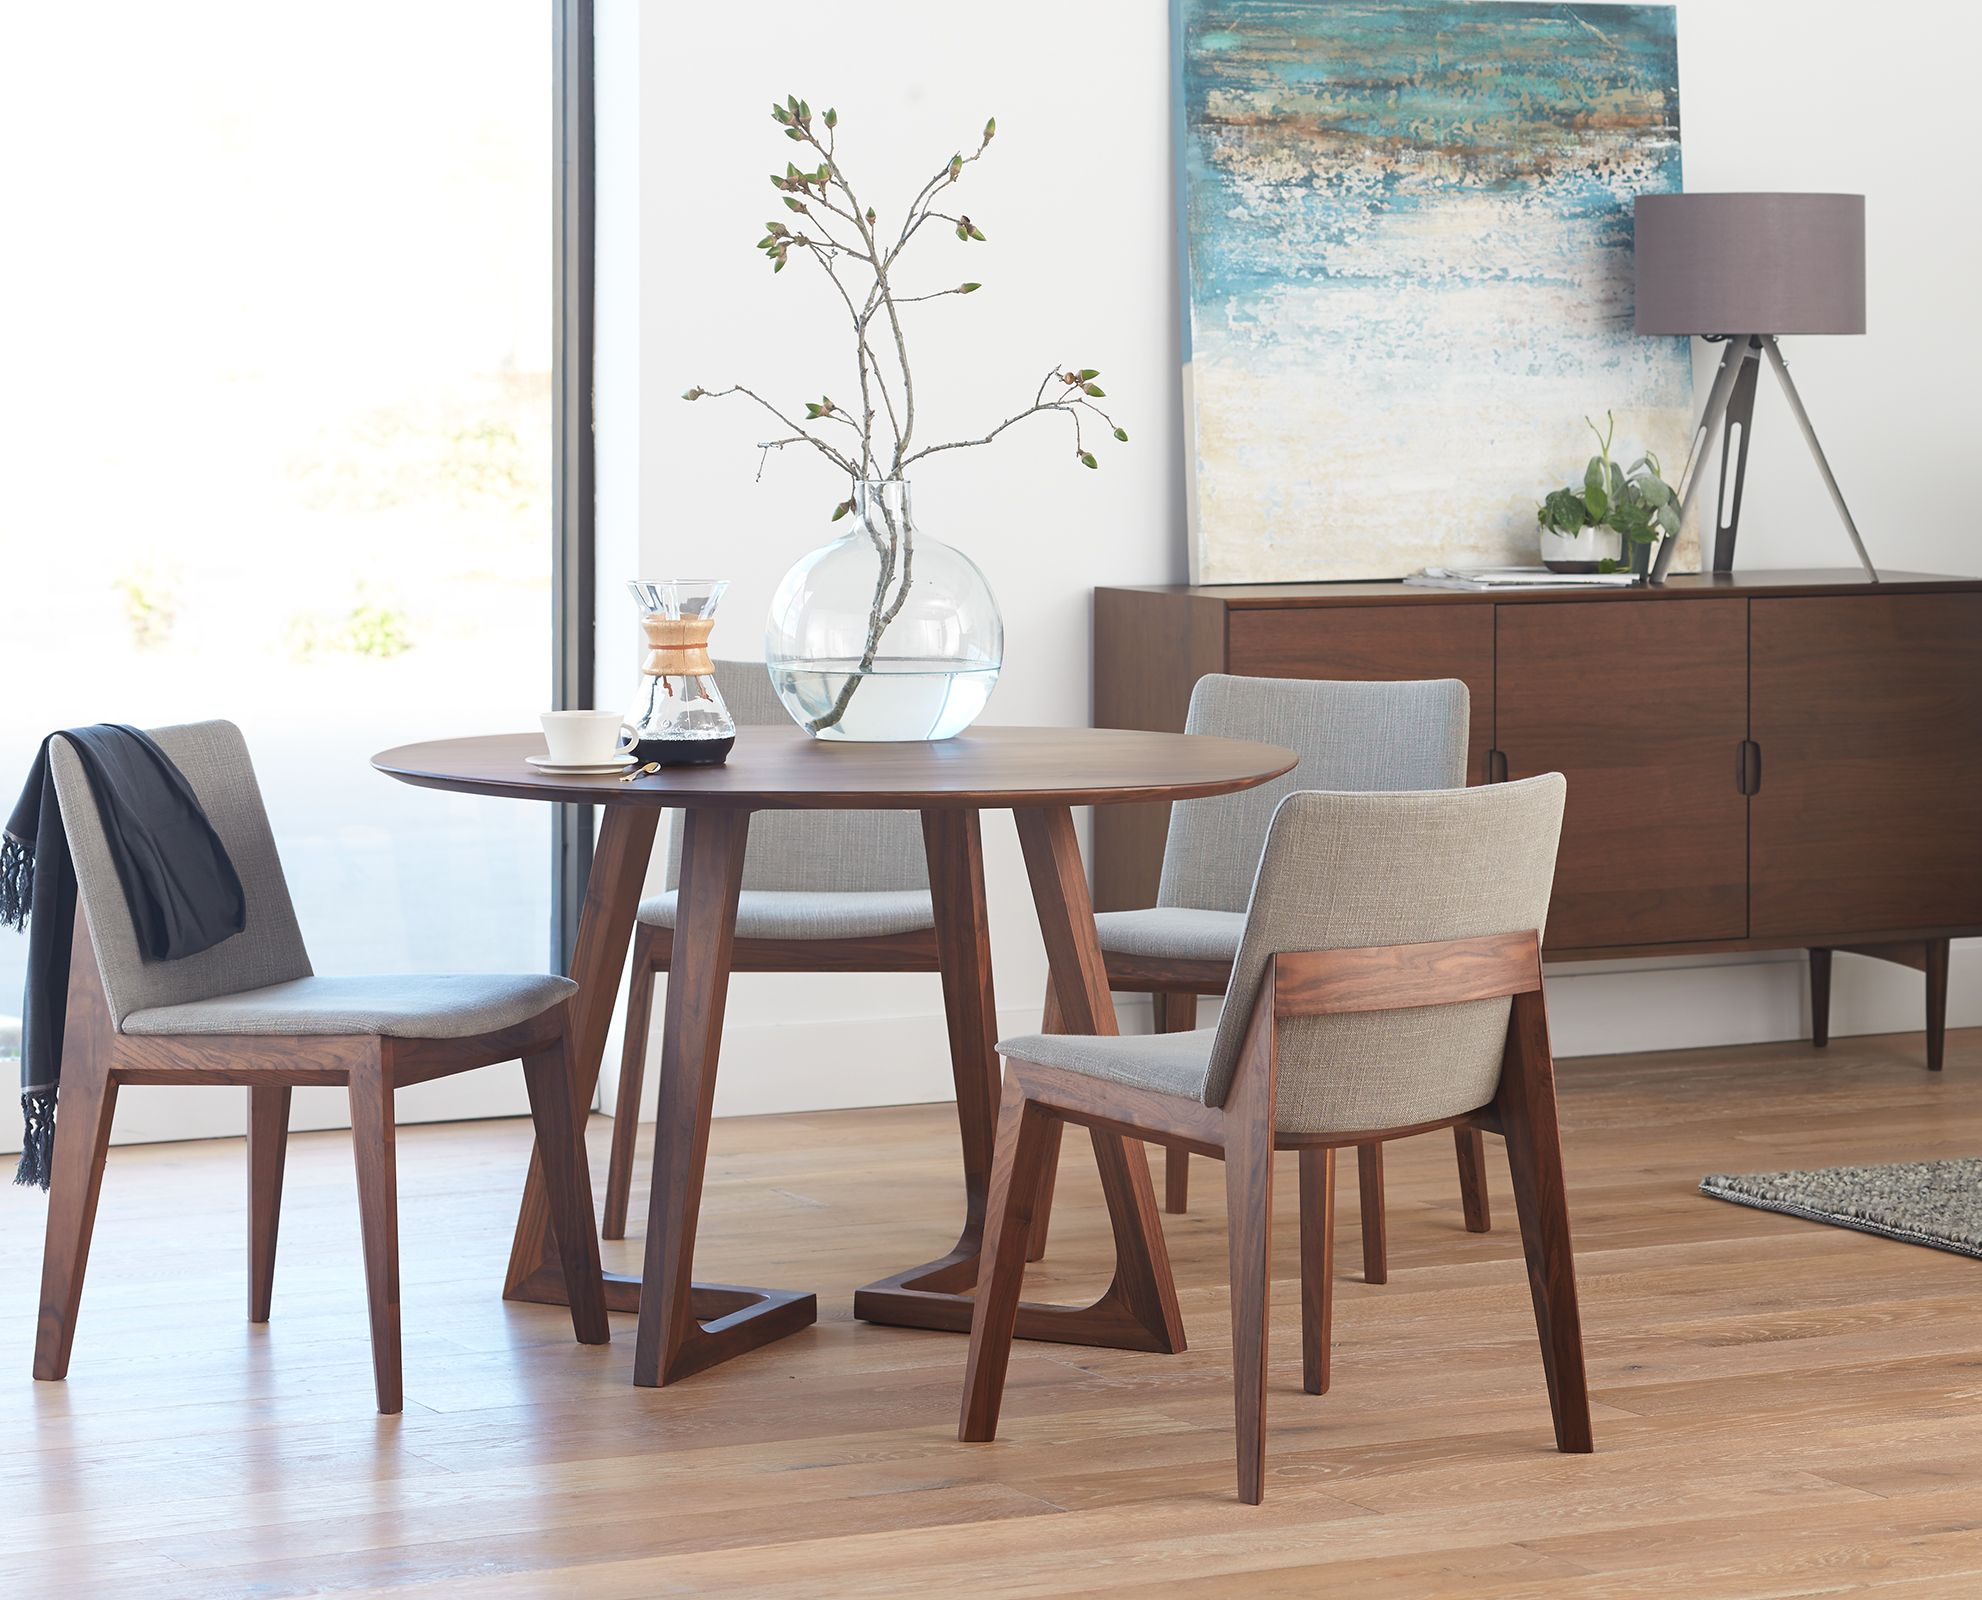 Circle Chairs For Bedrooms Round Table And Chairs From Dania Condo Pinterest